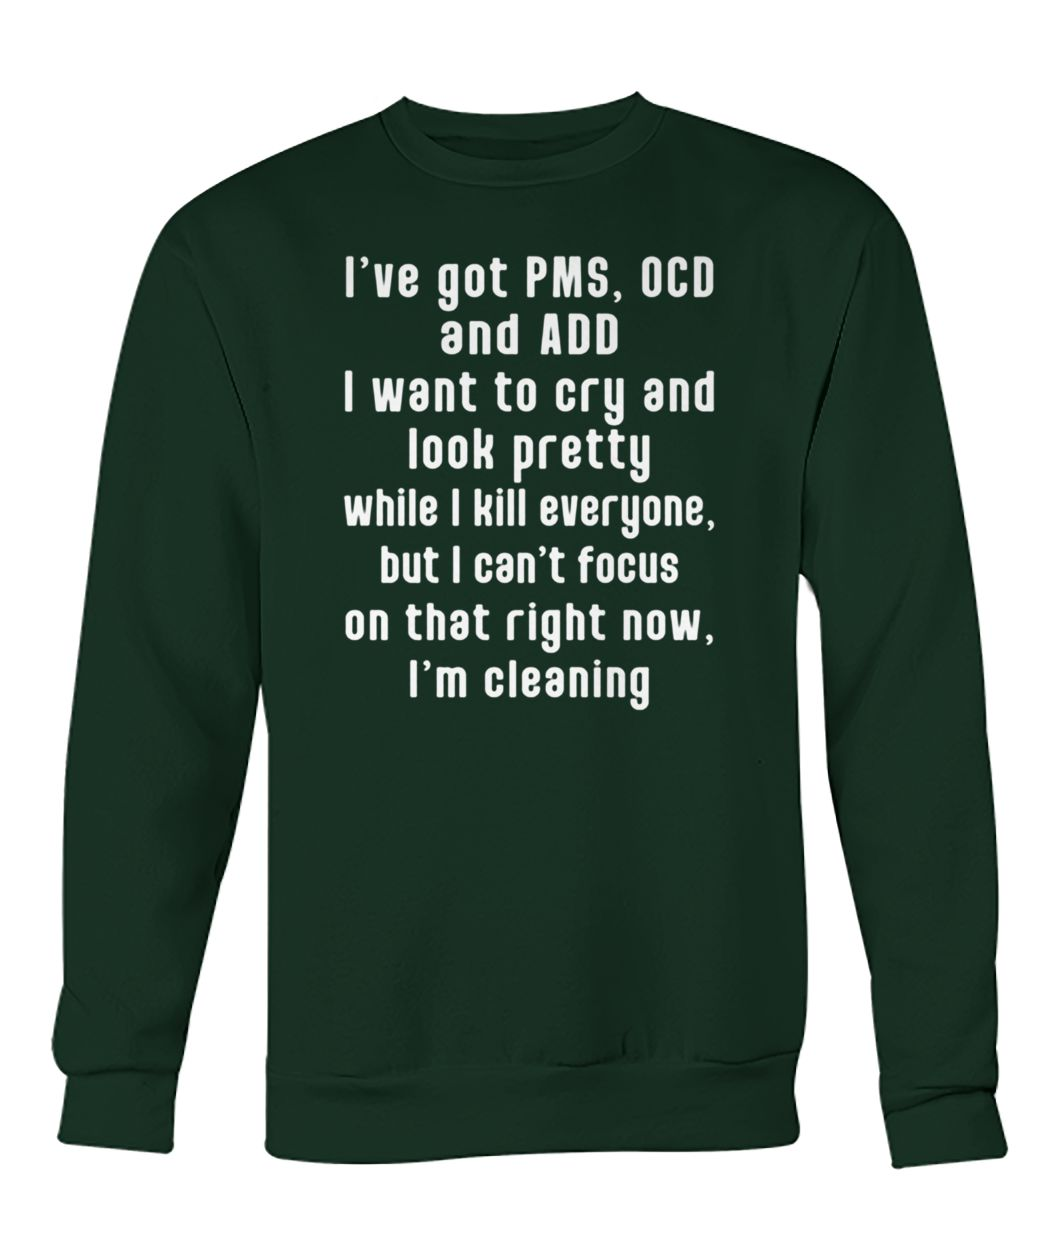 I have pms ocd and add I want to cry and look pretty crew neck sweatshirt